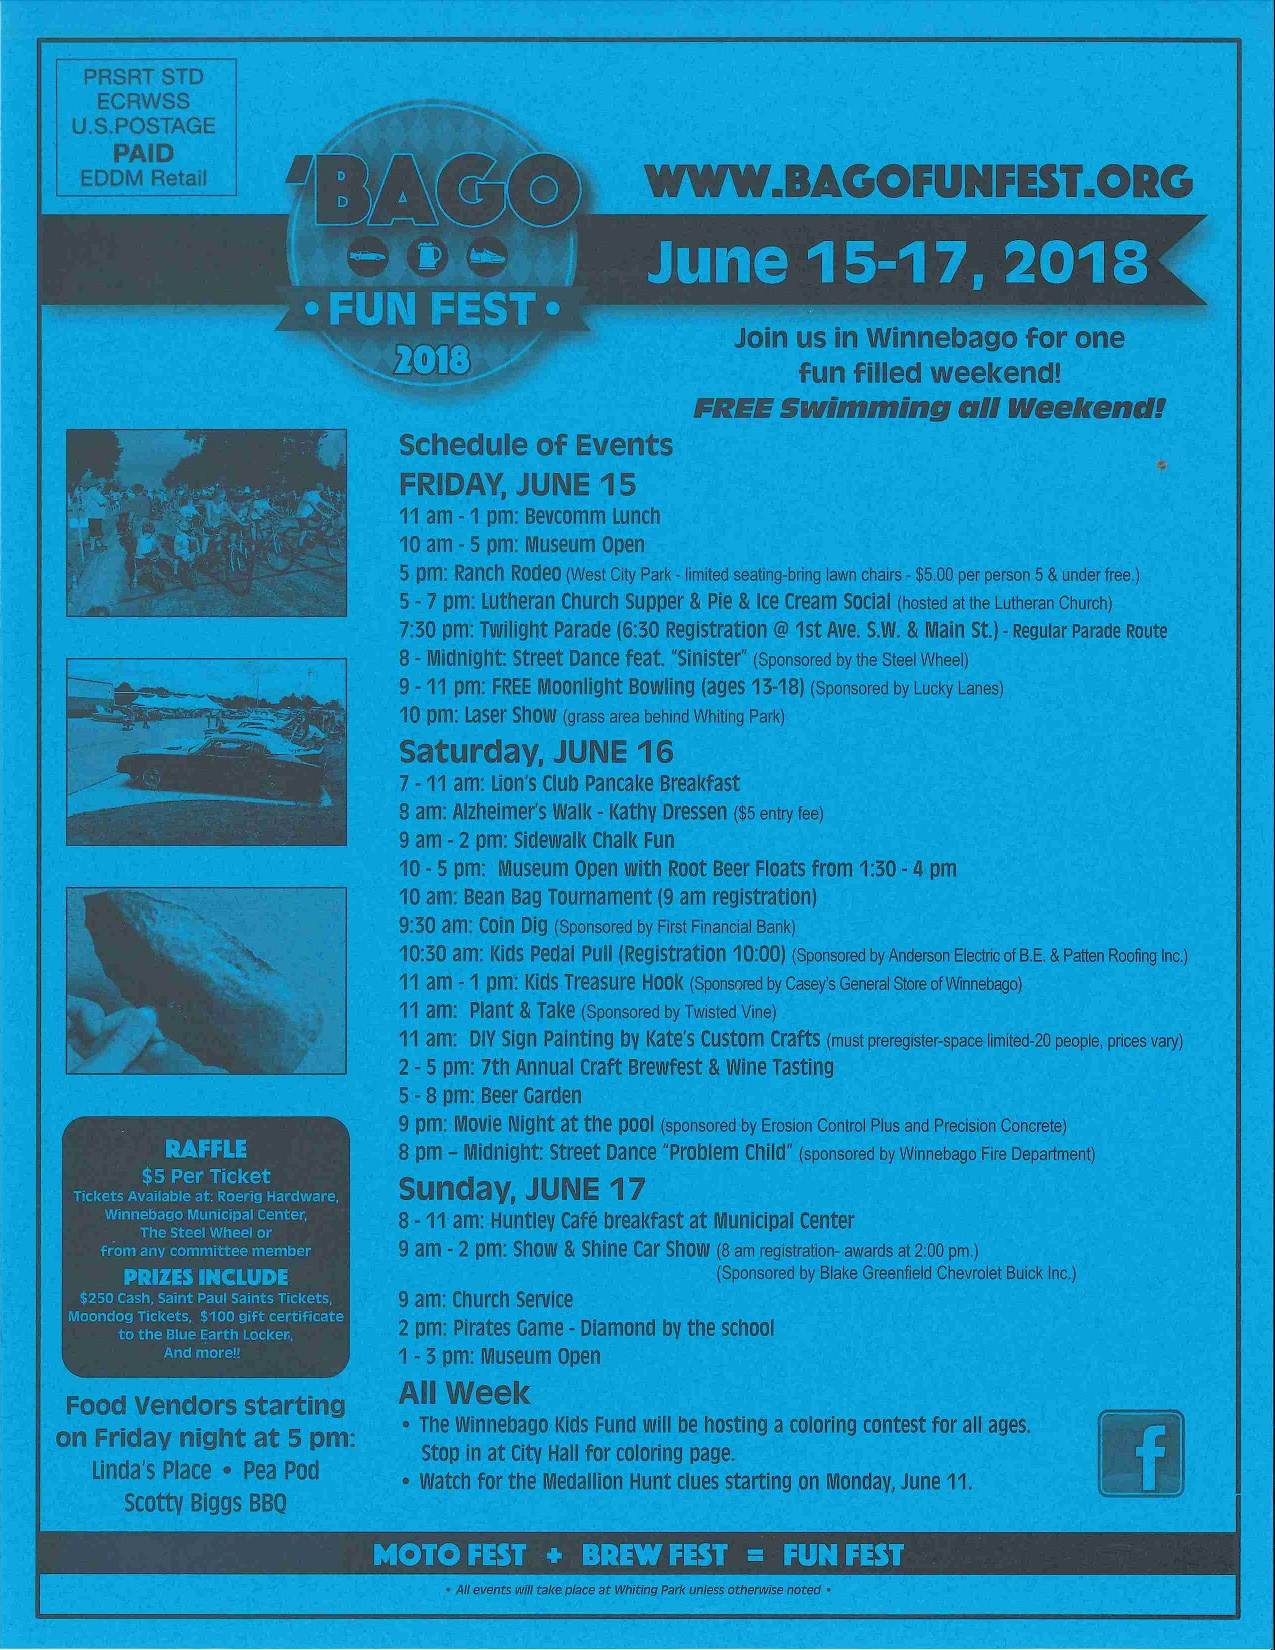 Bago Fun Fest 2018 - June 15, 16, 17